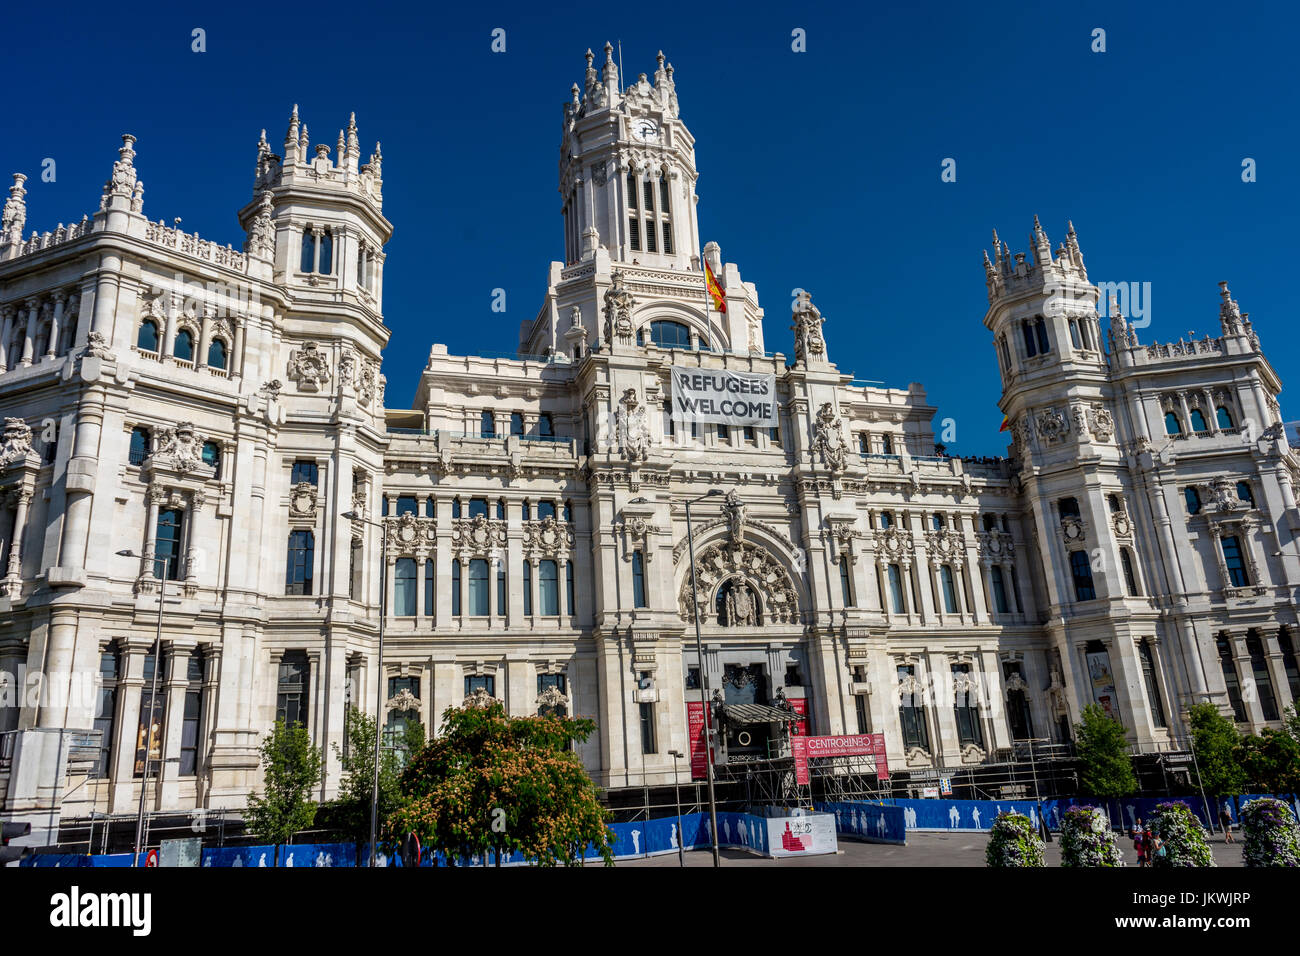 Madrid, Spain - June 17 : The Madrid city hall on June 17, 2017. A welcome refugees banner is displayed on the city - Stock Image